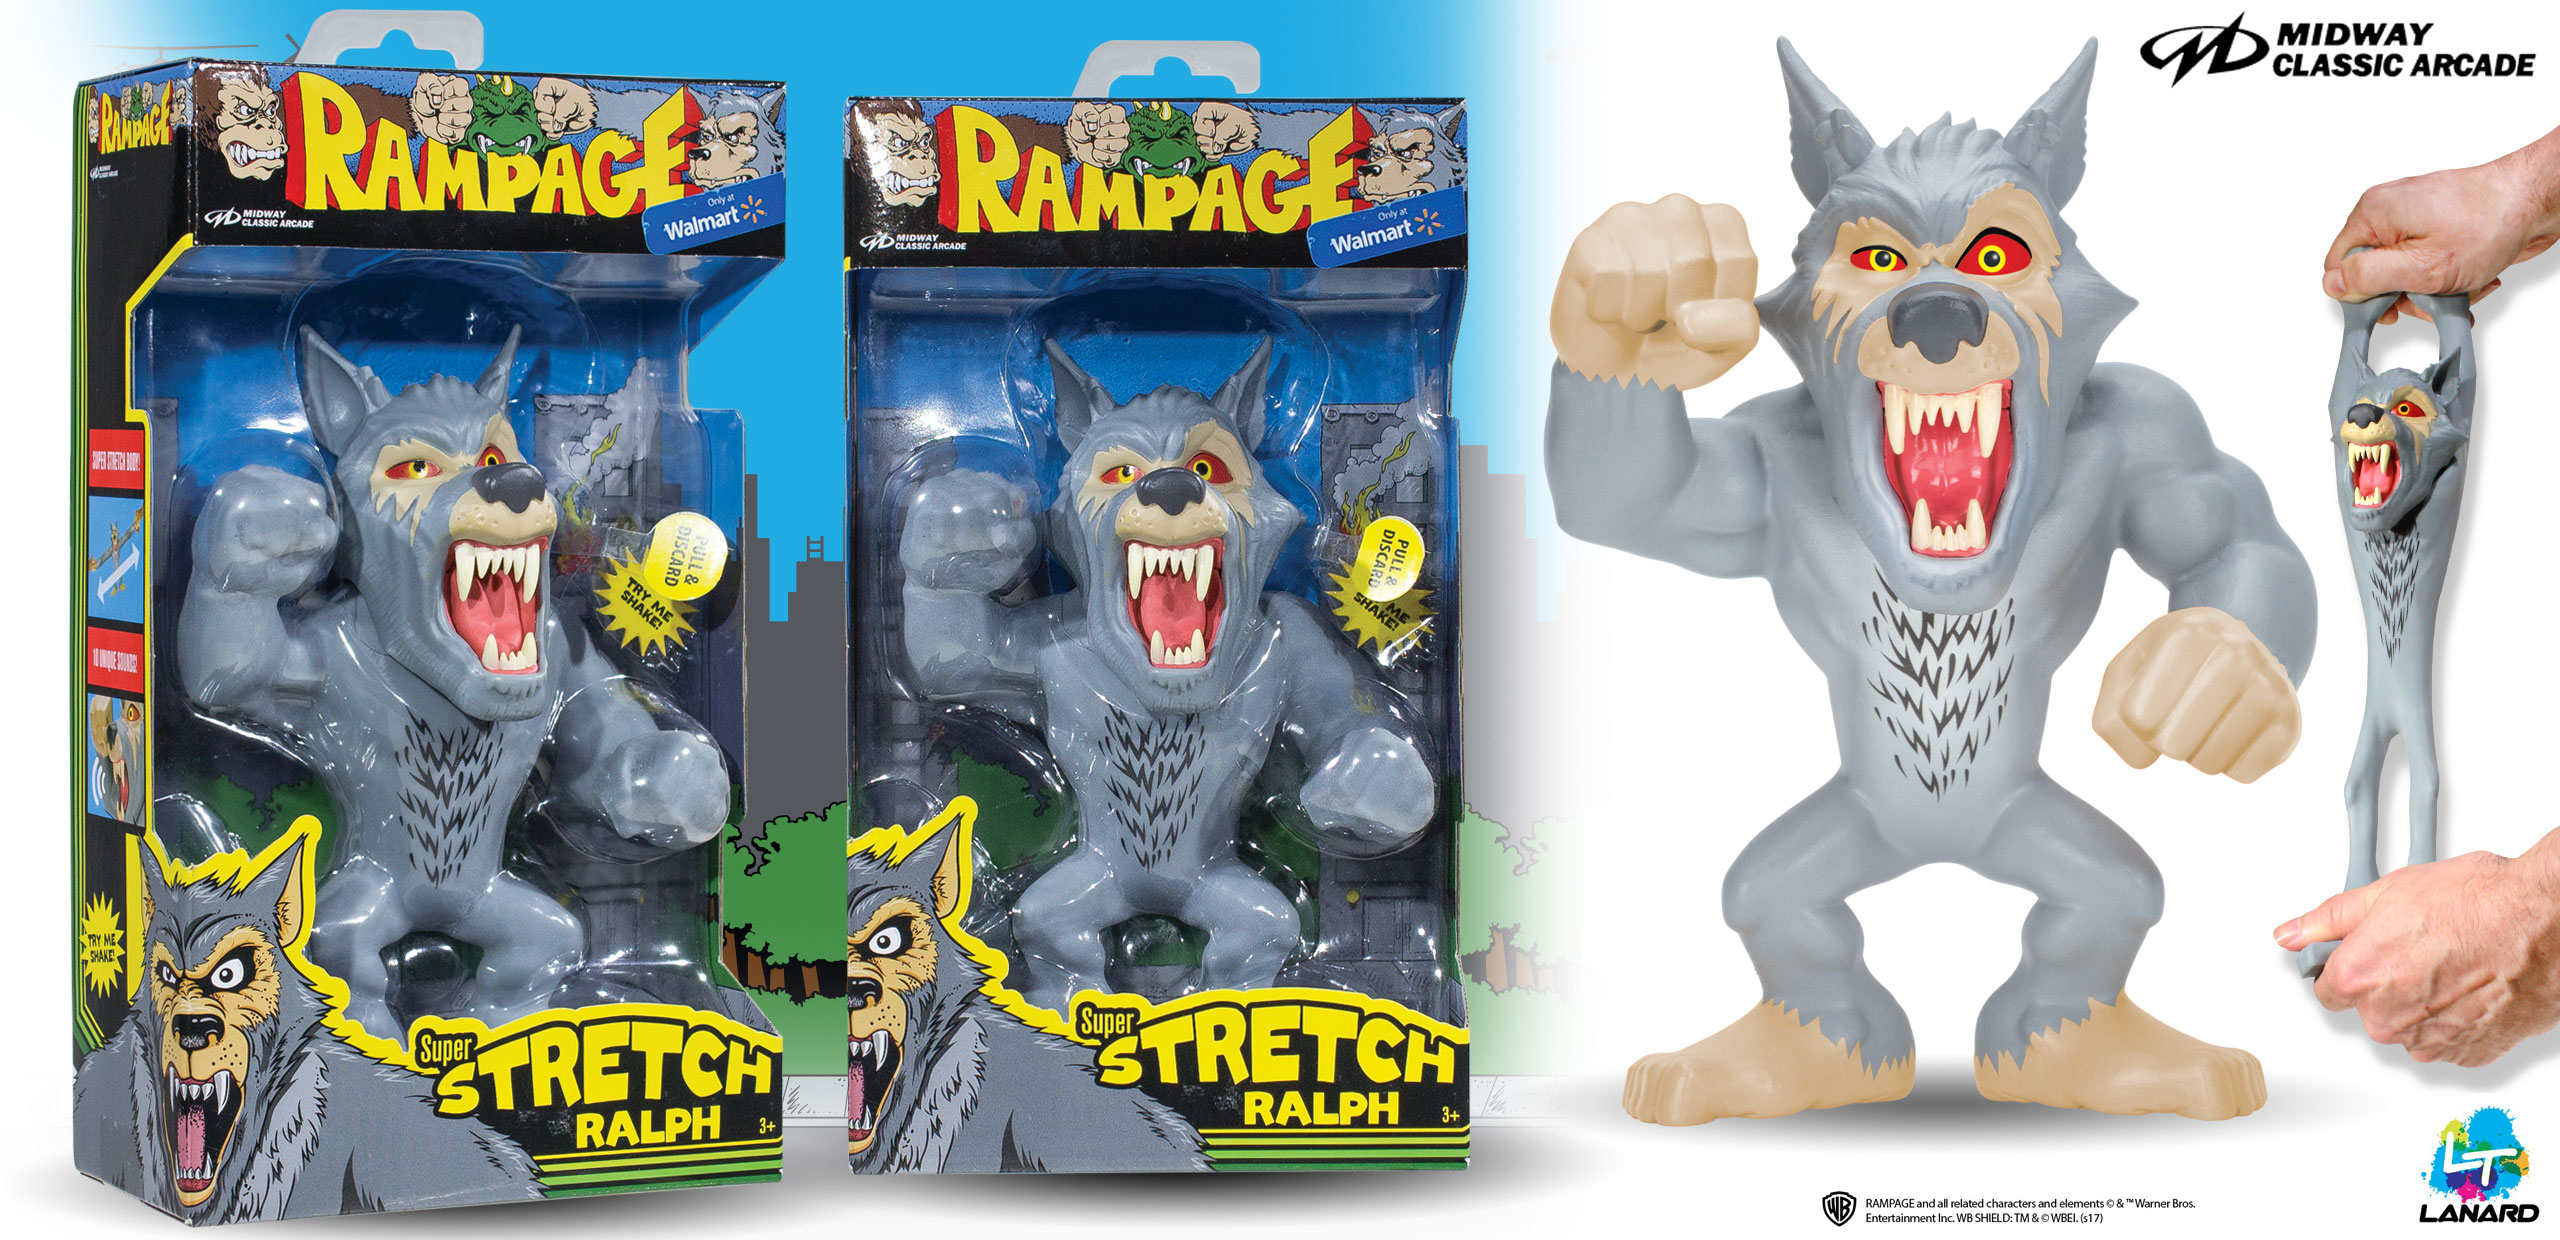 Full Line Of Rampage Toys Includes Arcade And Movie Fun